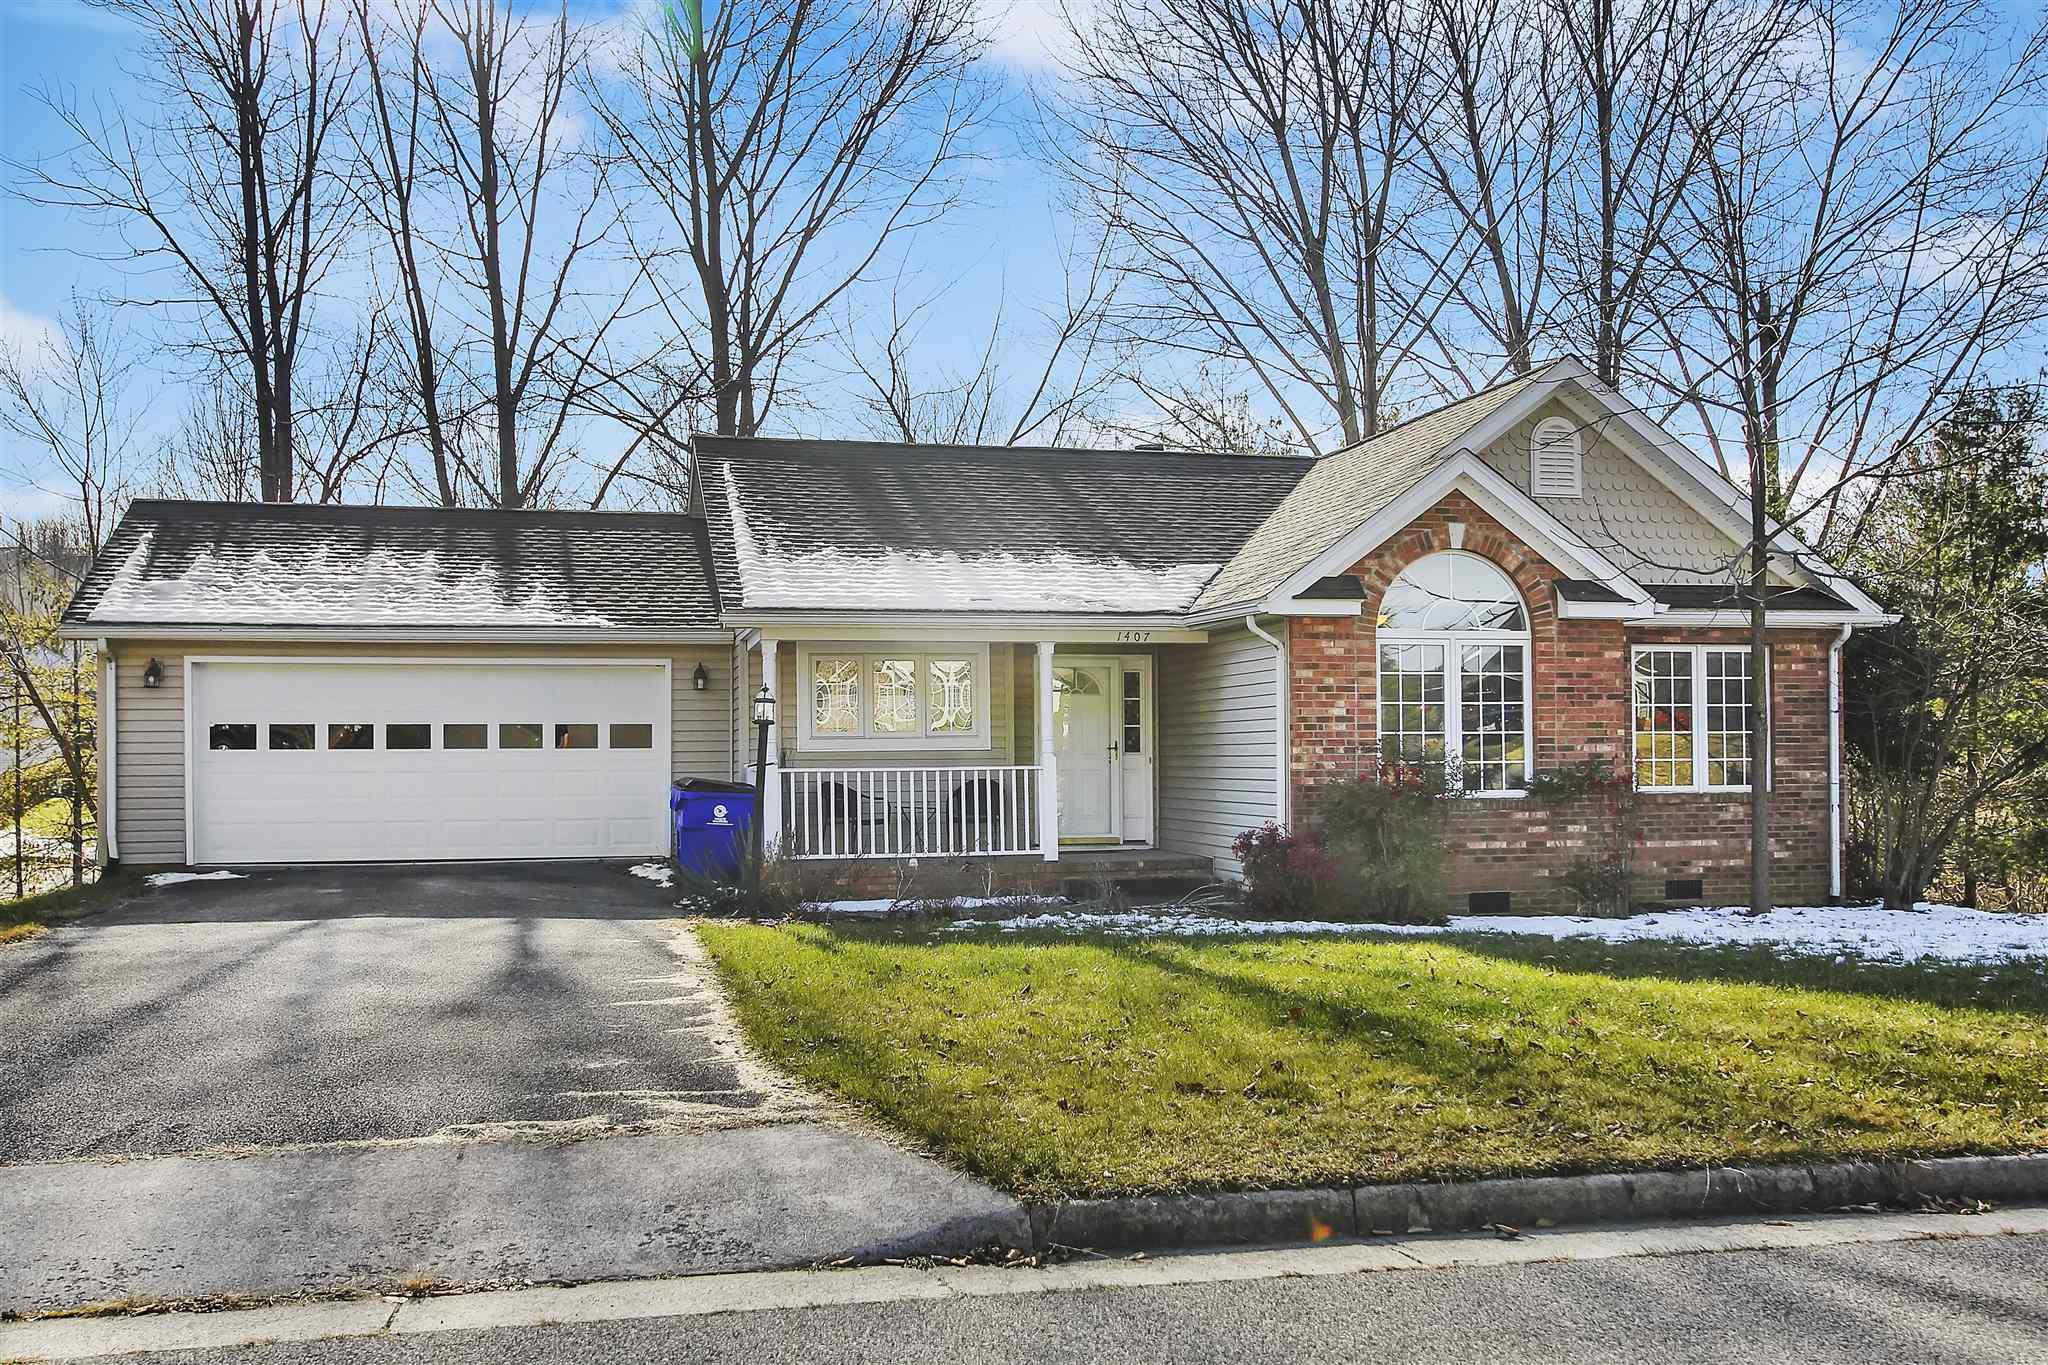 Beautiful 3 bedroom, 2 bath, one level home with 2 car garage located in Blacksburg inside town limits!  Very convenient to 460 and the bus stop is just an 8 minute walk away!  At the cul de sac just a couple hundred feet away is the entrance to a community walking path that extends almost to North Main.  Great deck to relax on with a creek flowing behind the back yard.  Lots of natural light inside.  Master bedroom has a large walk-in closet and the en suite bathroom includes a jetted tub, as well as the shower and toilet separated with a pocket door.  Living room has a wood fireplace and built-in bookshelves.  Come look at this home today and imagine yourself living here.  3D Matterport virtual tour linked above.